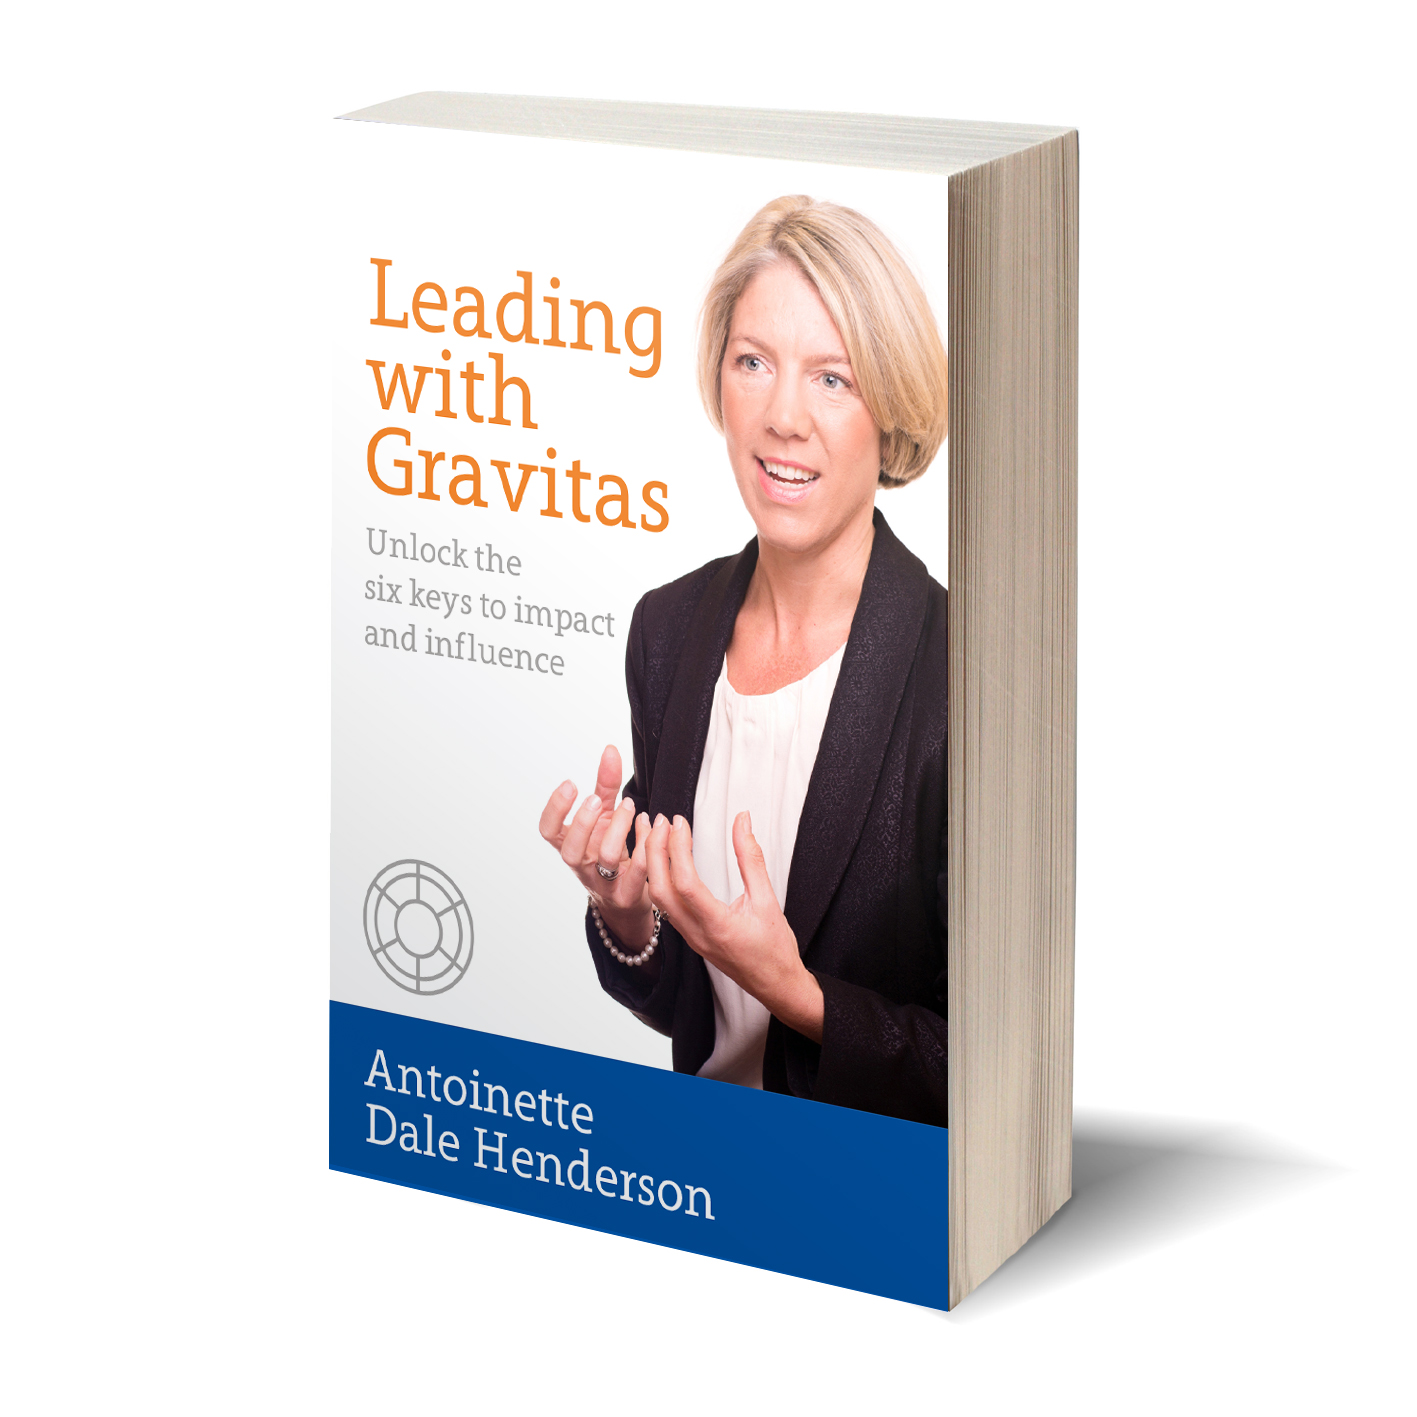 Leading with Gravitas, available from Amazon